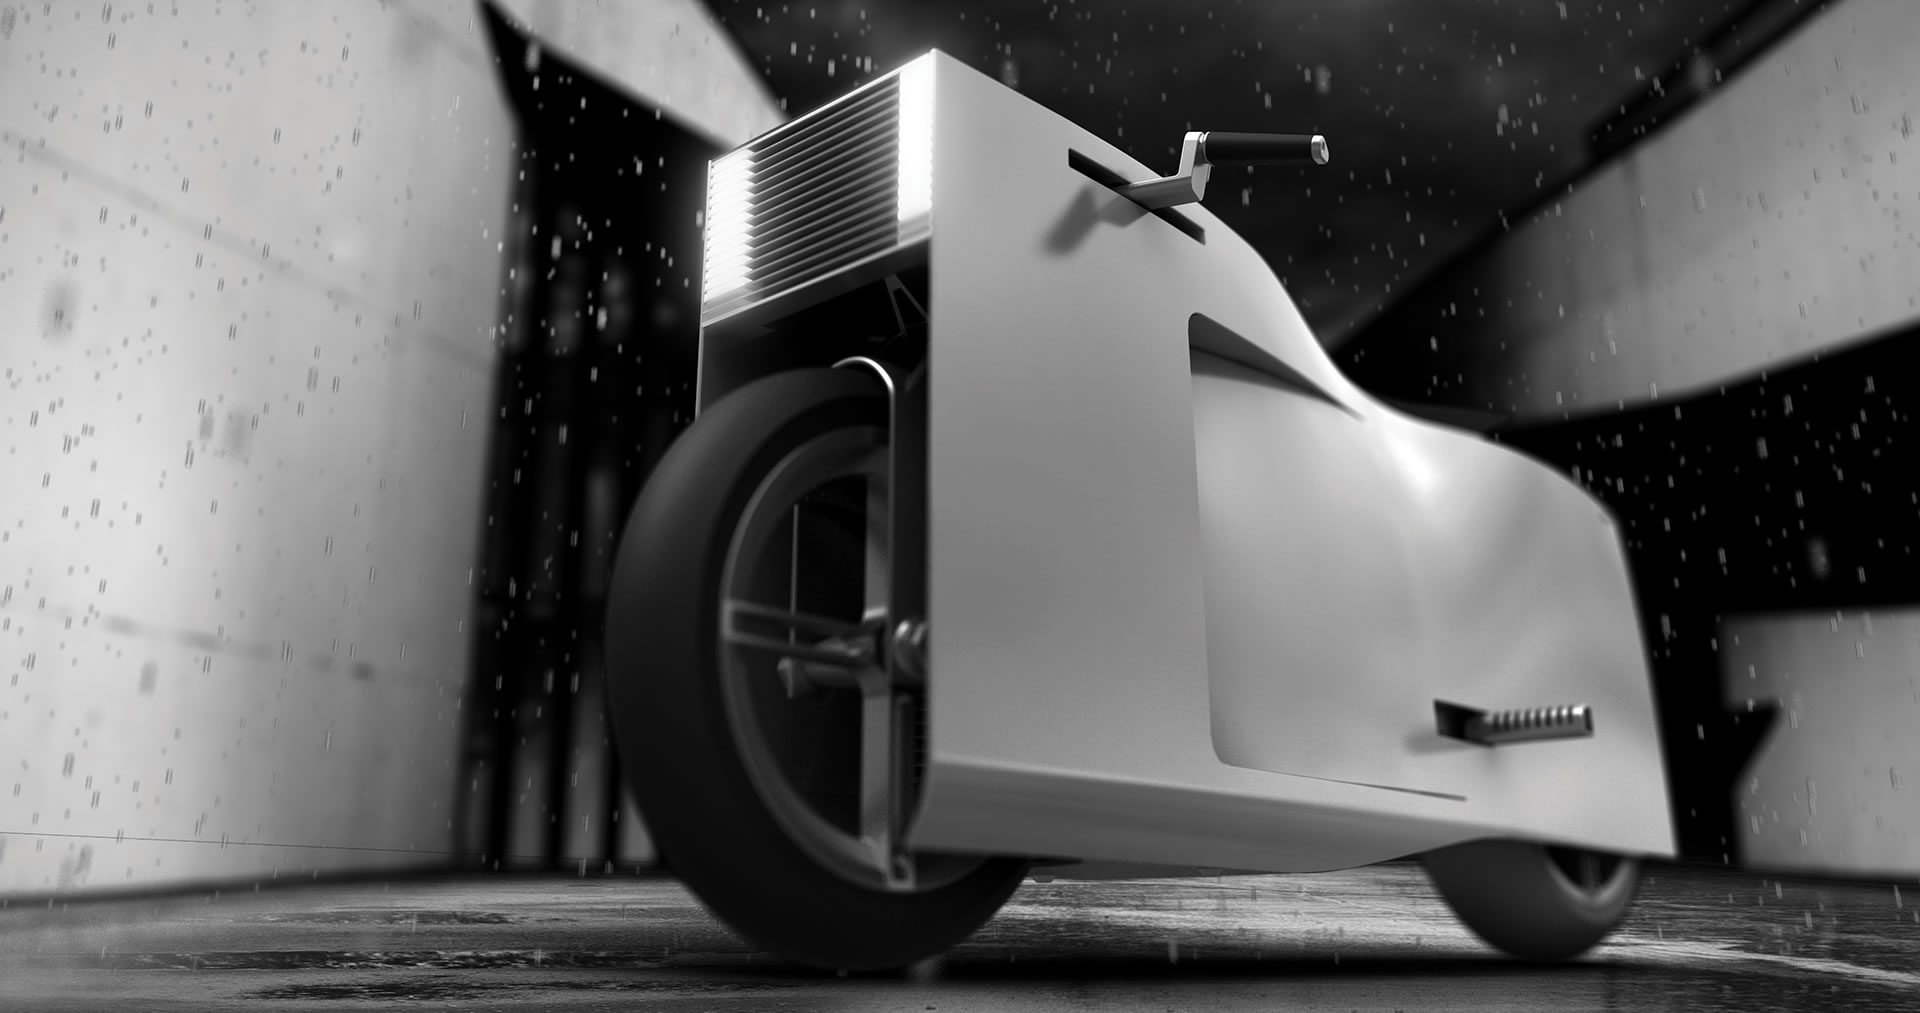 Nucleus electric motorcycle front view